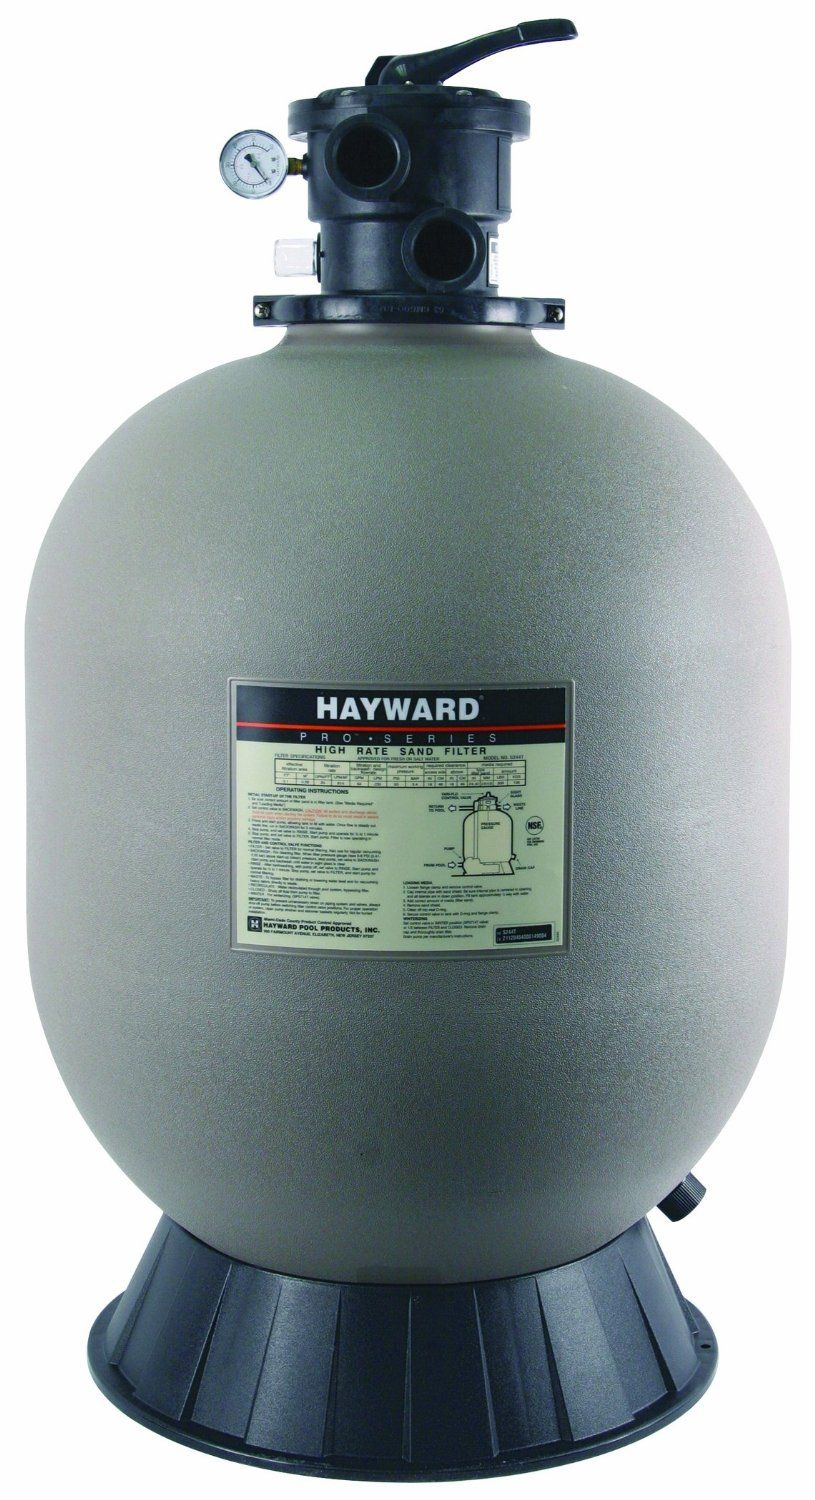 New Deals Hayward S244t Pro Series Top Mount 24 Inch Sand Filter With 1 2 Vari Flo Valve For In Ground Pools